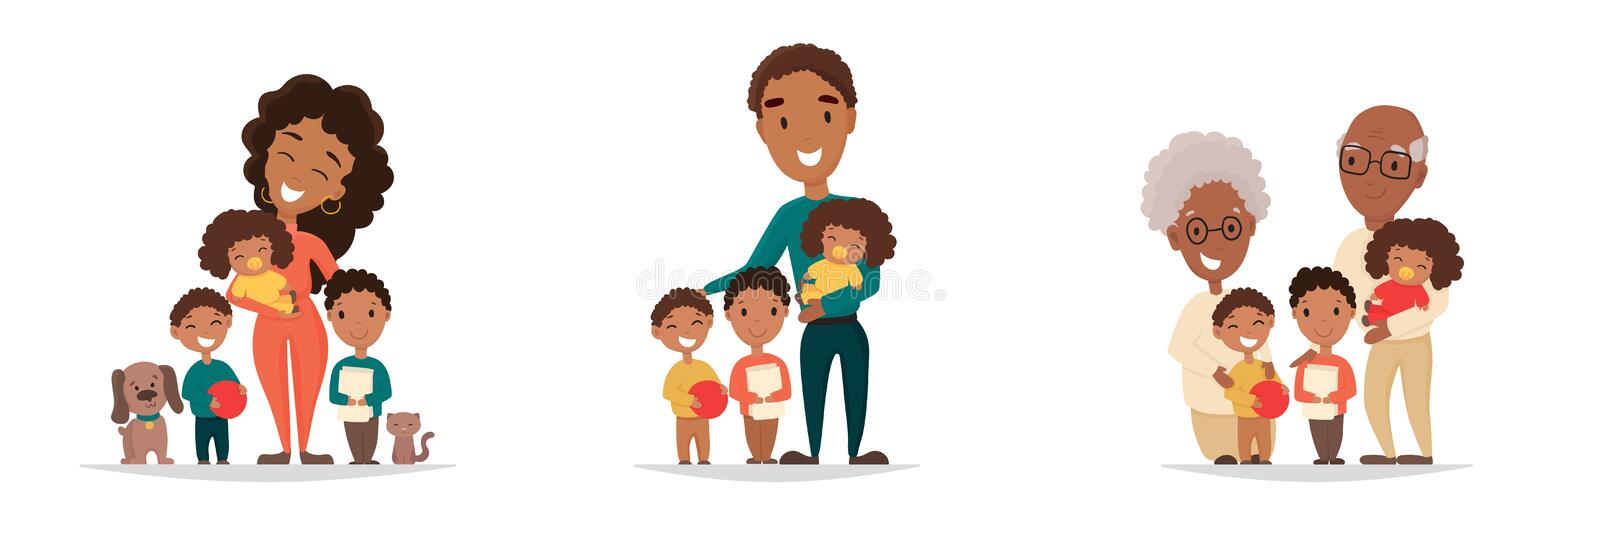 Five Members Happy Family Stock Illustrations – 11 Five Members Happy Family  Stock Illustrations, Vectors & Clipart - Dreamstime